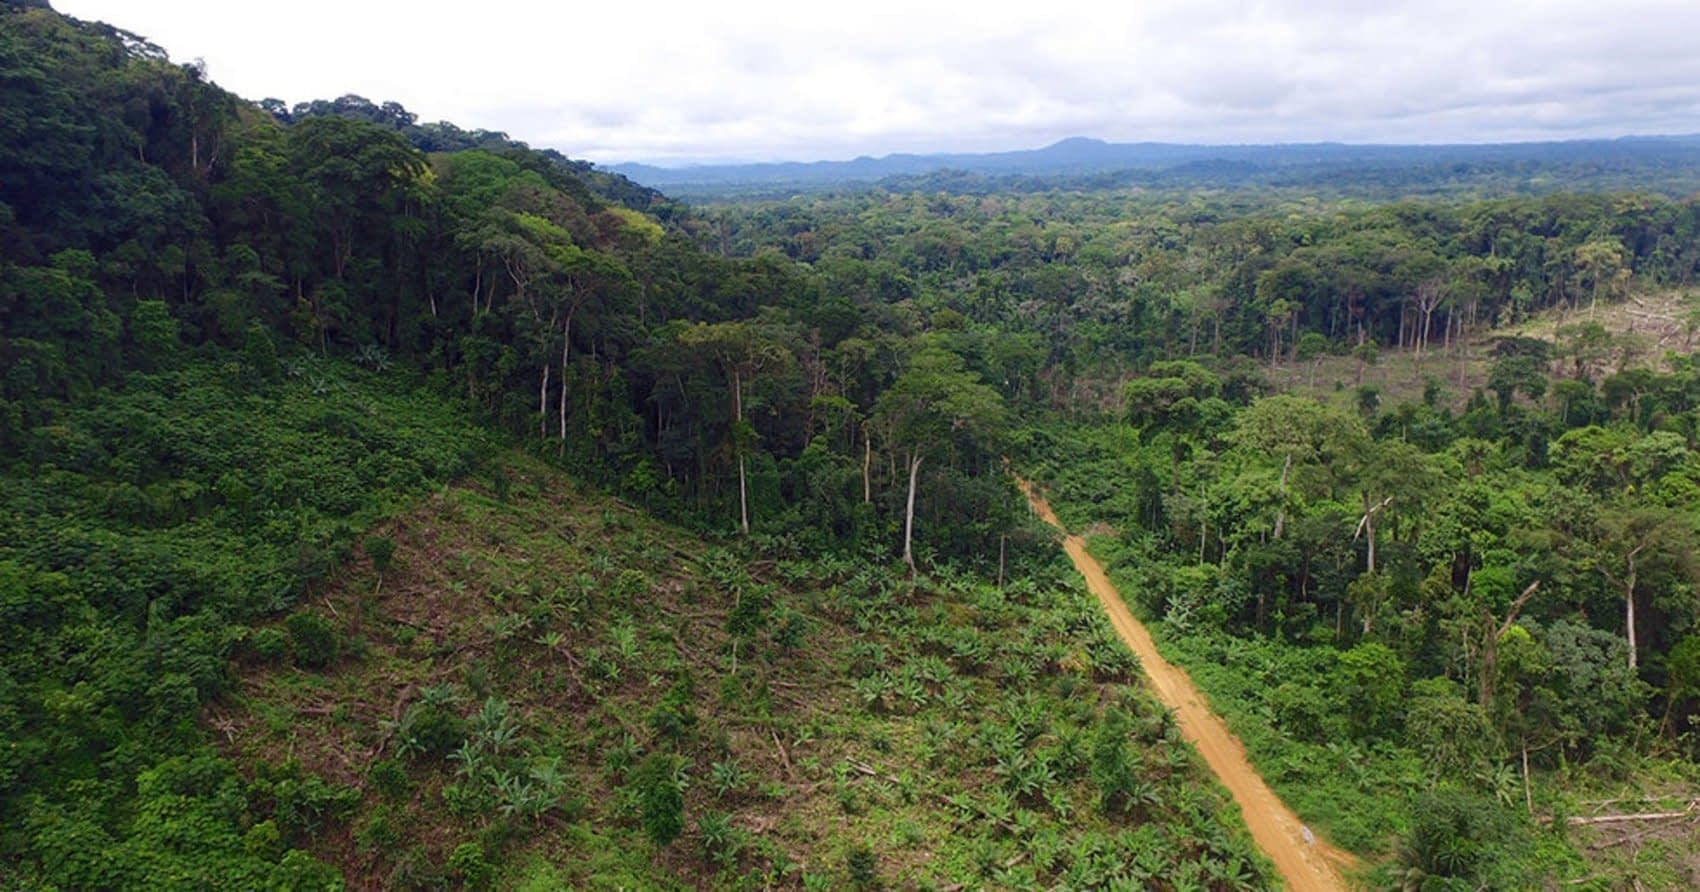 , Palm Oil Sourcing Should Be Disclosed to Consumers, Sustainability Study Recommends, TheCircularEconomy.com